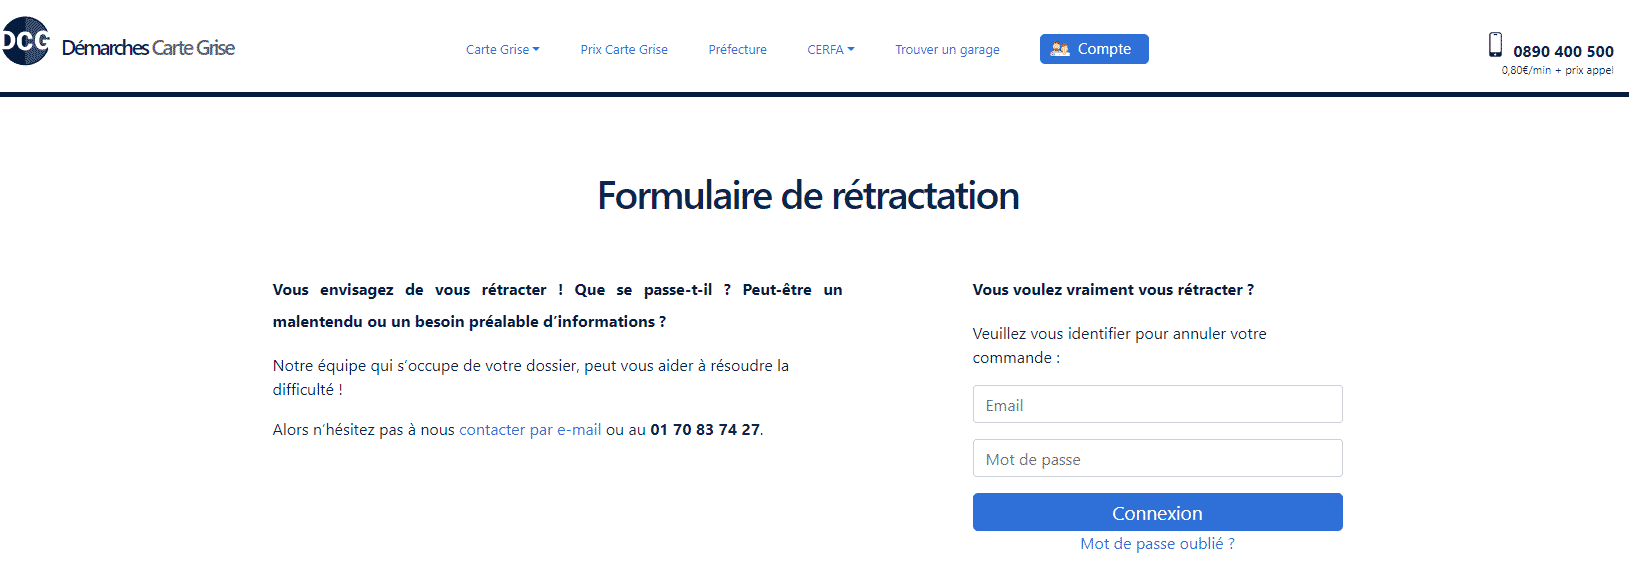 Formulaire Retractation Demarches Carte Grise